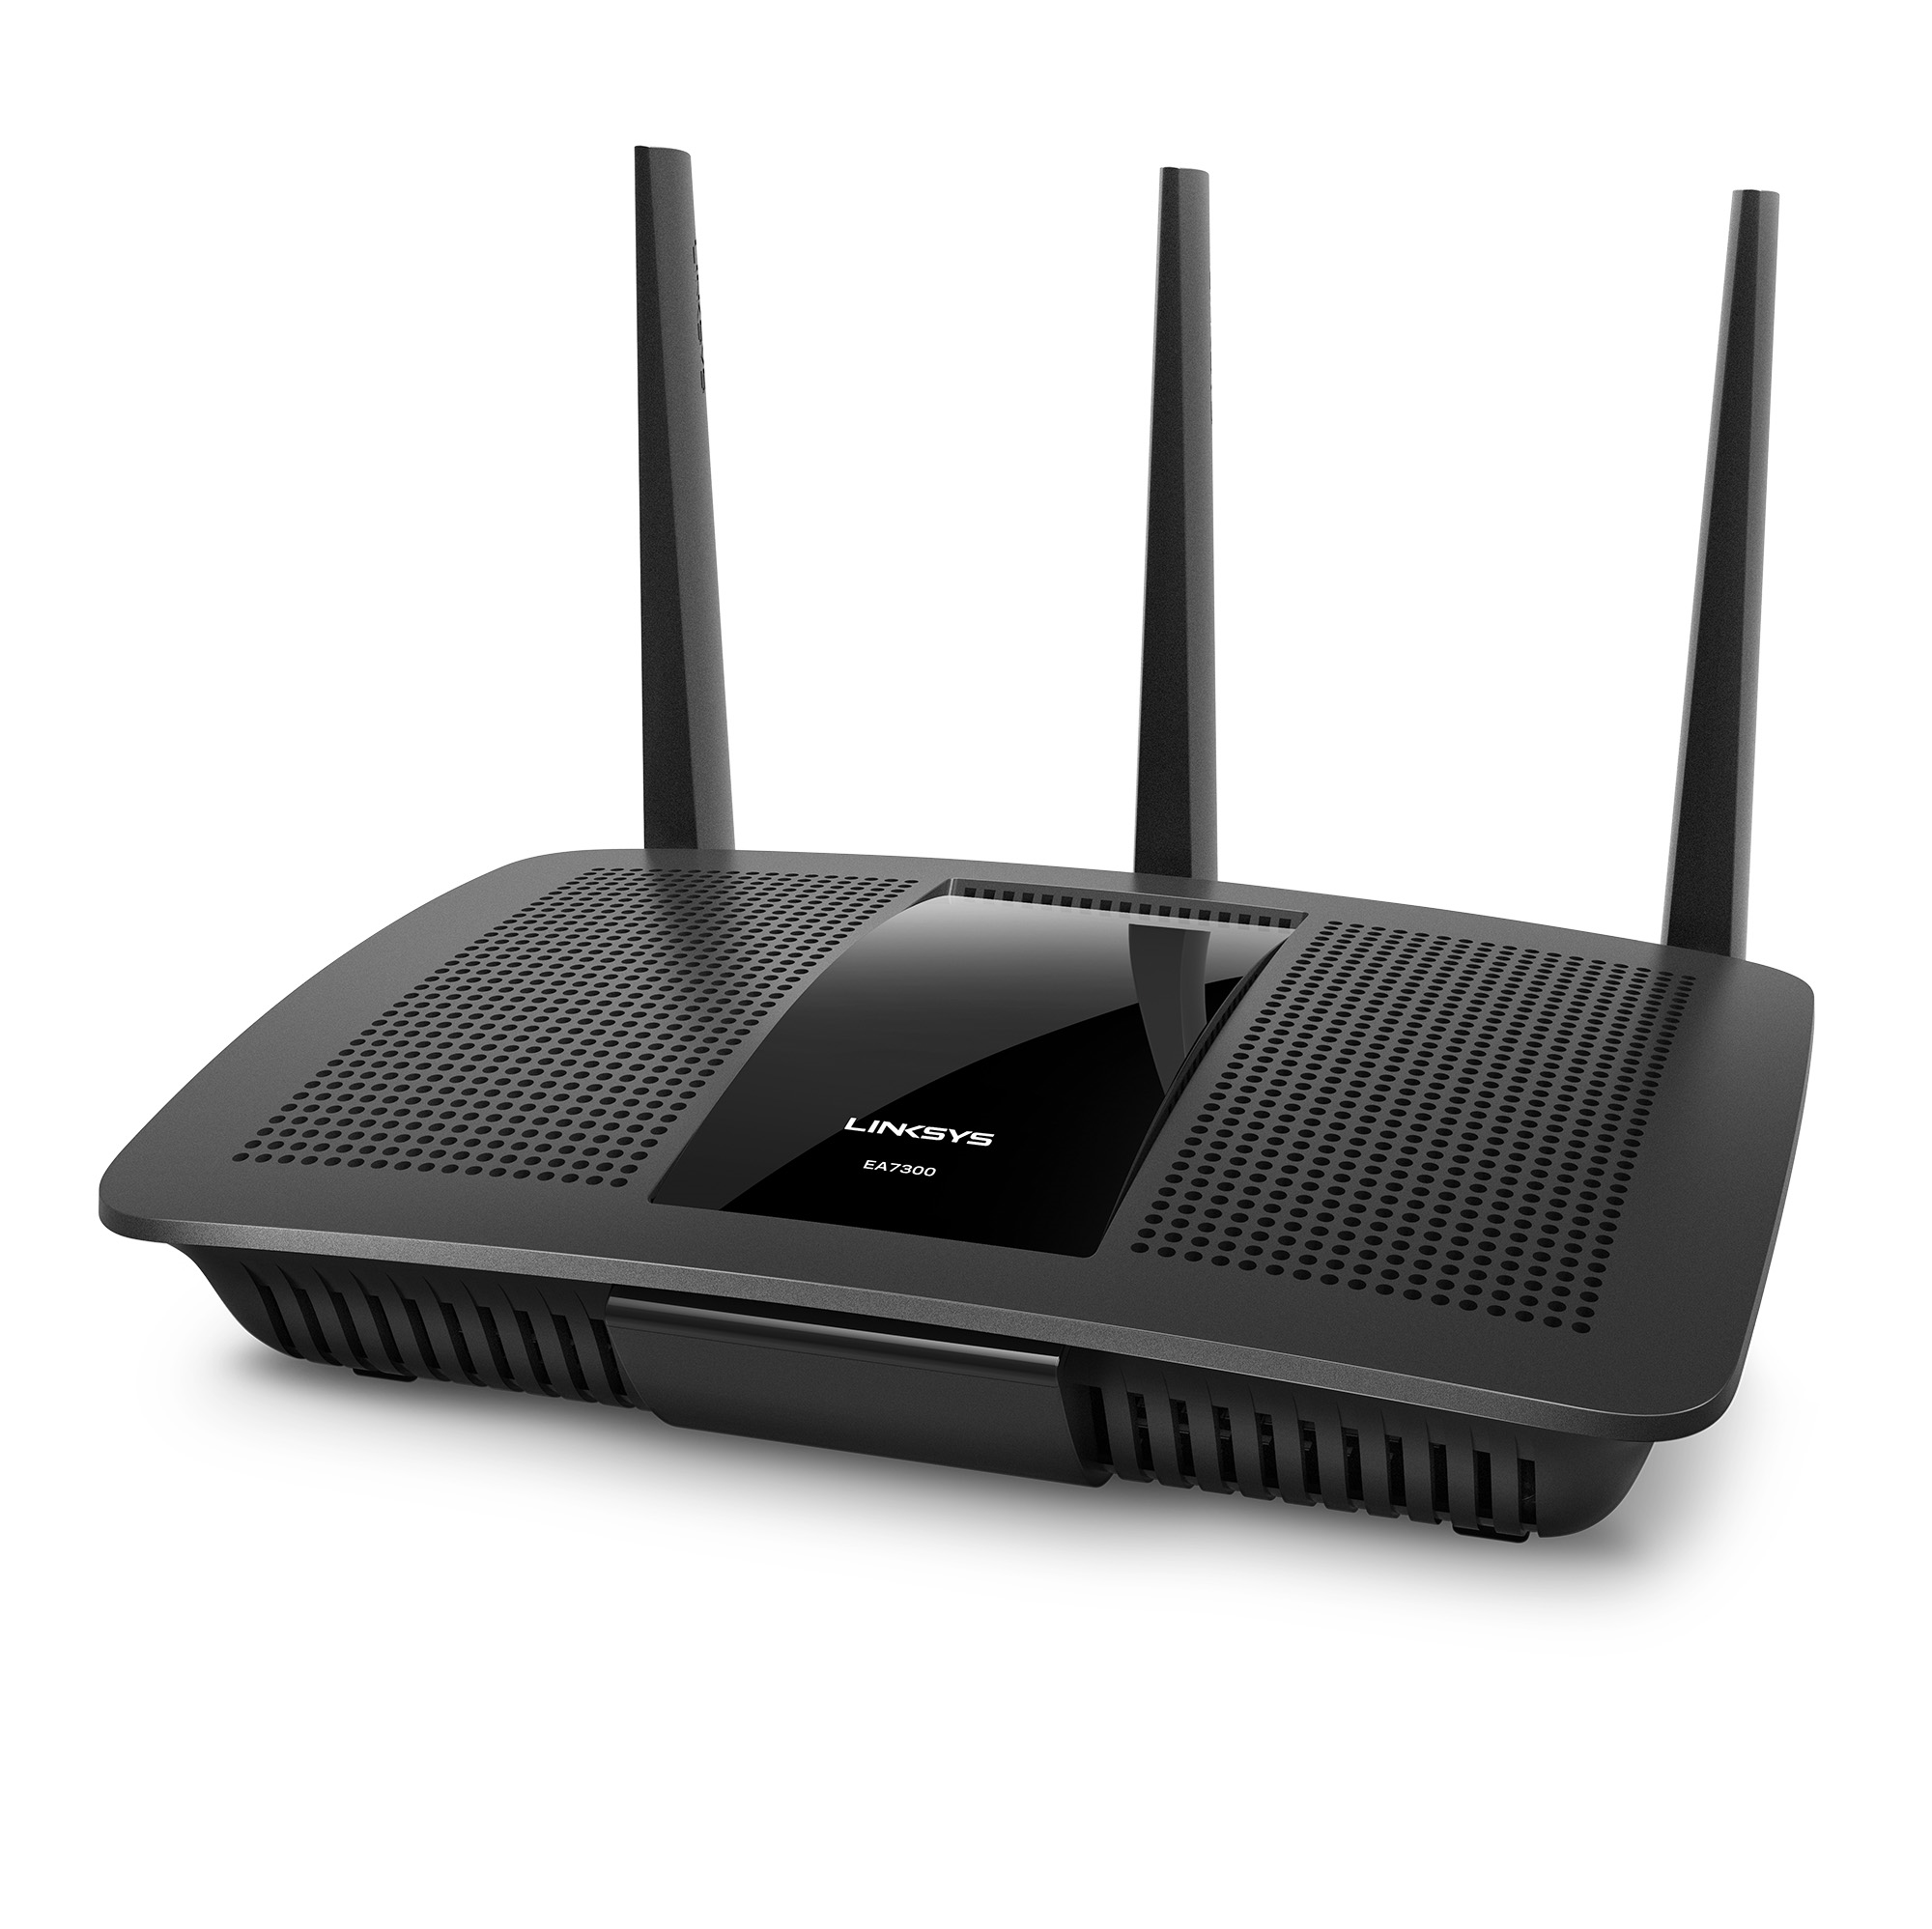 Linksys MAX-STREAM AC1750 Router features MU-MIMO by Belkin International, Inc.